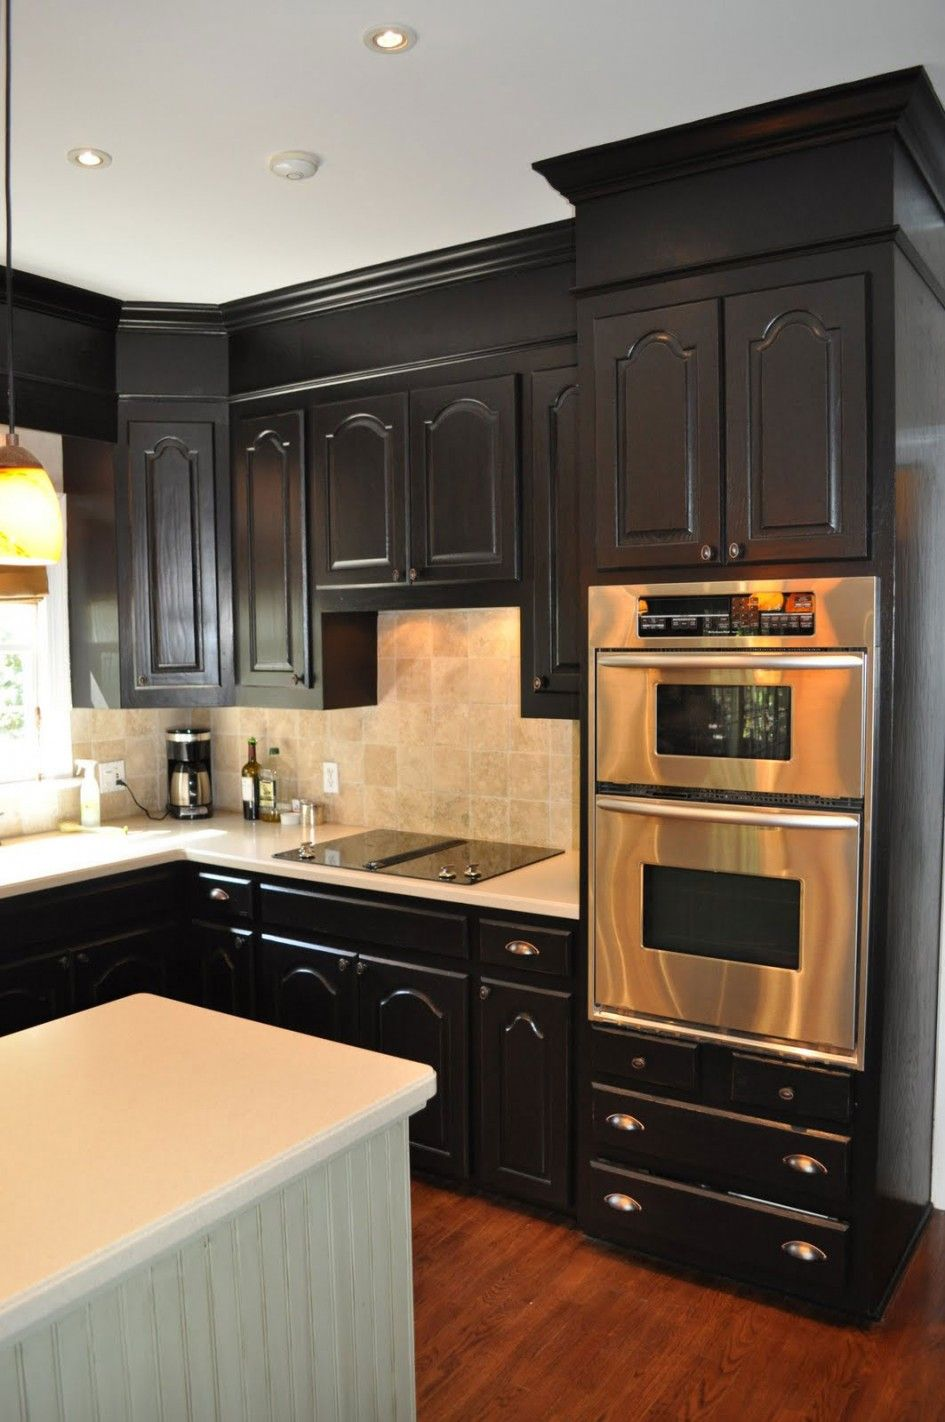 Elegant Kitchen Cabinet Exceptional Creative Corner Cabinet Ideas With Cathedral  Cabinet Doors Style In Black Also Whirlpool